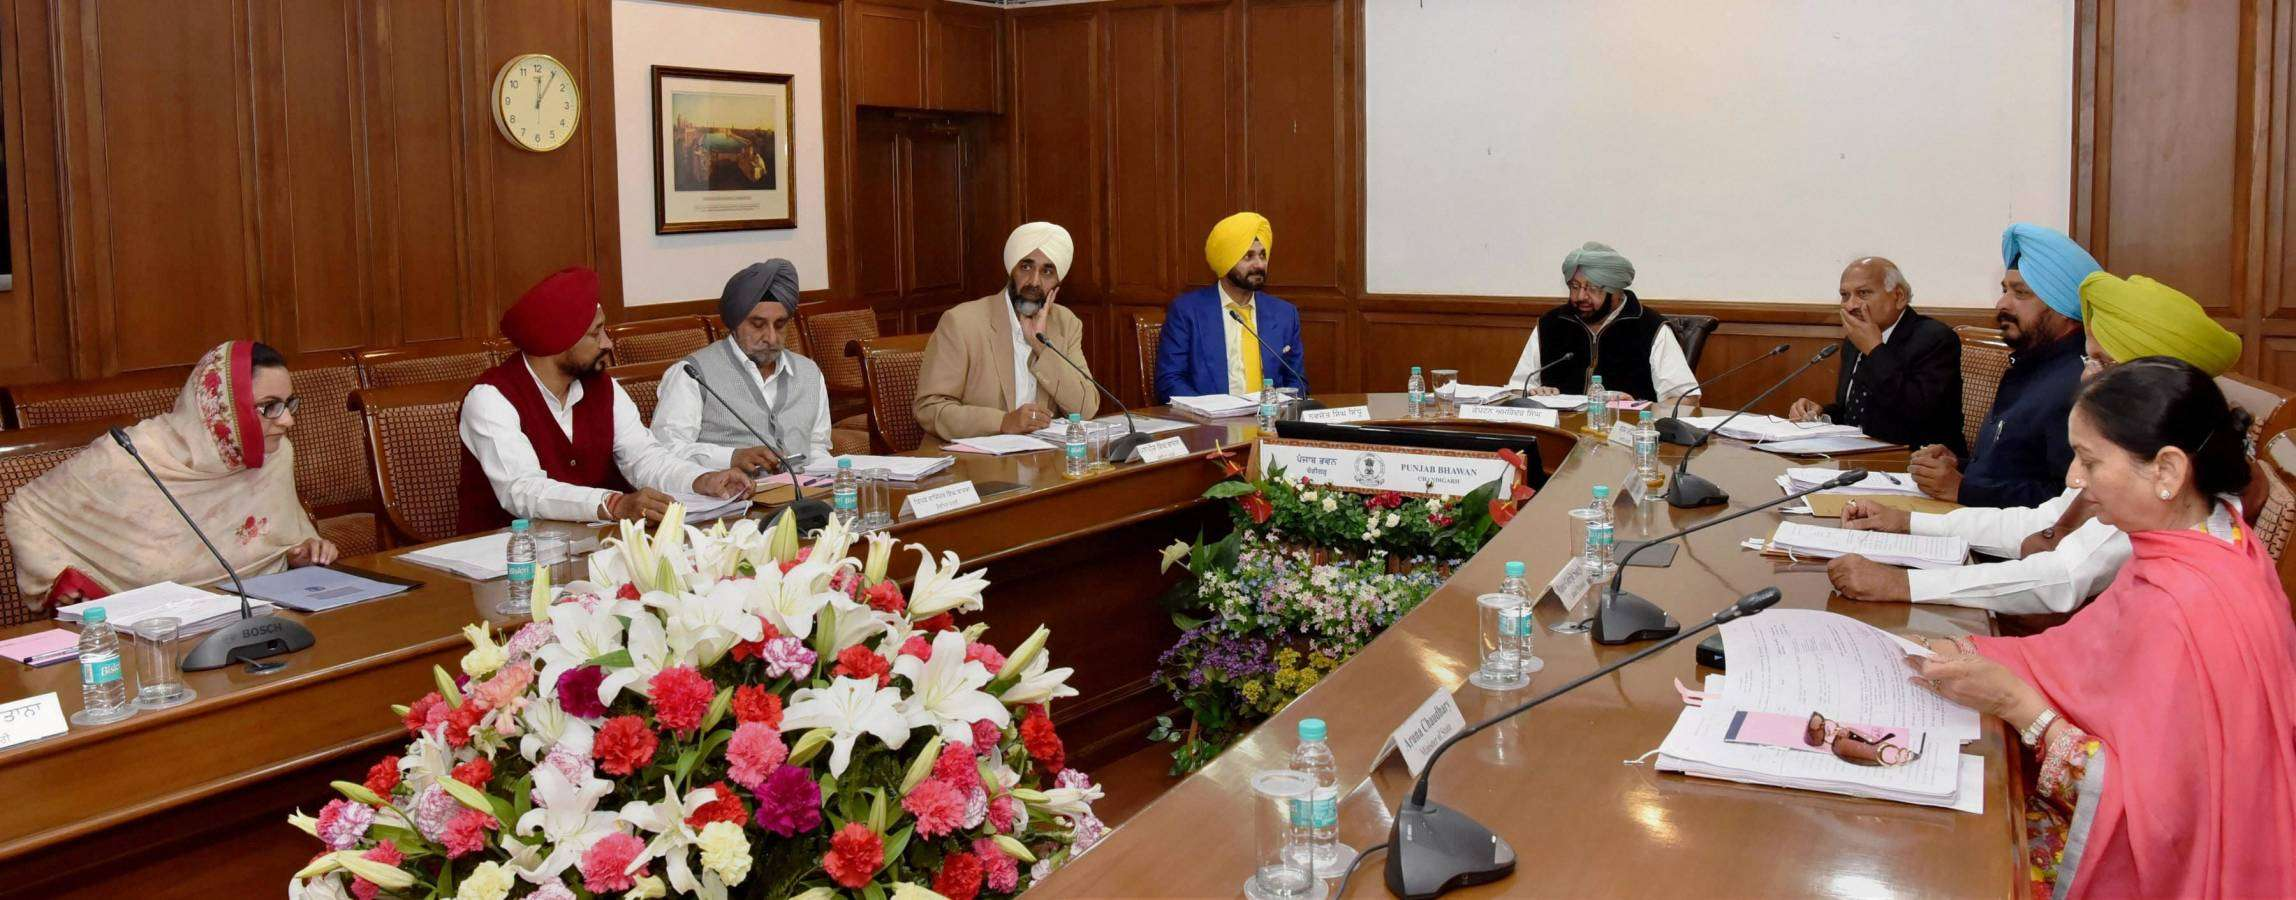 Punjab cabinet gives approval for constitution of State Higher Education Council